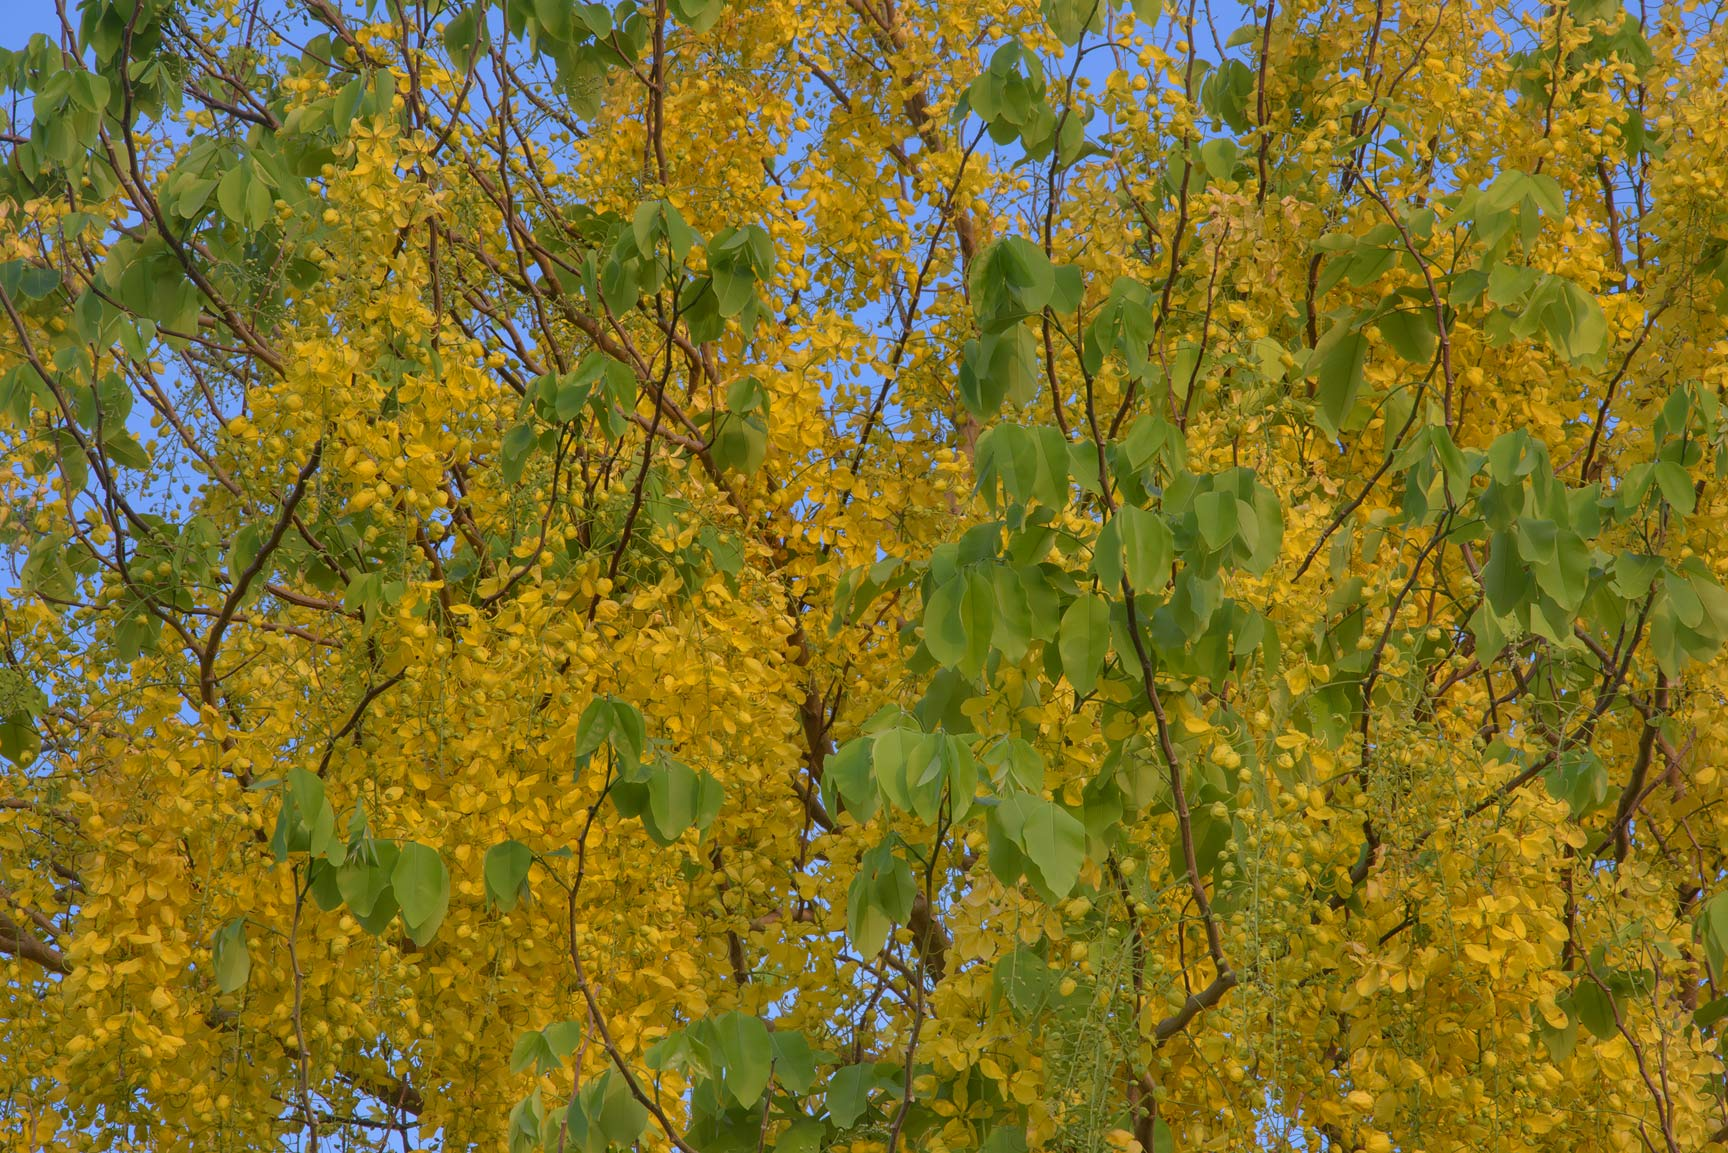 Golden shower tree (Cassia fistula) with flowers in Aspire Park. Doha, Qatar